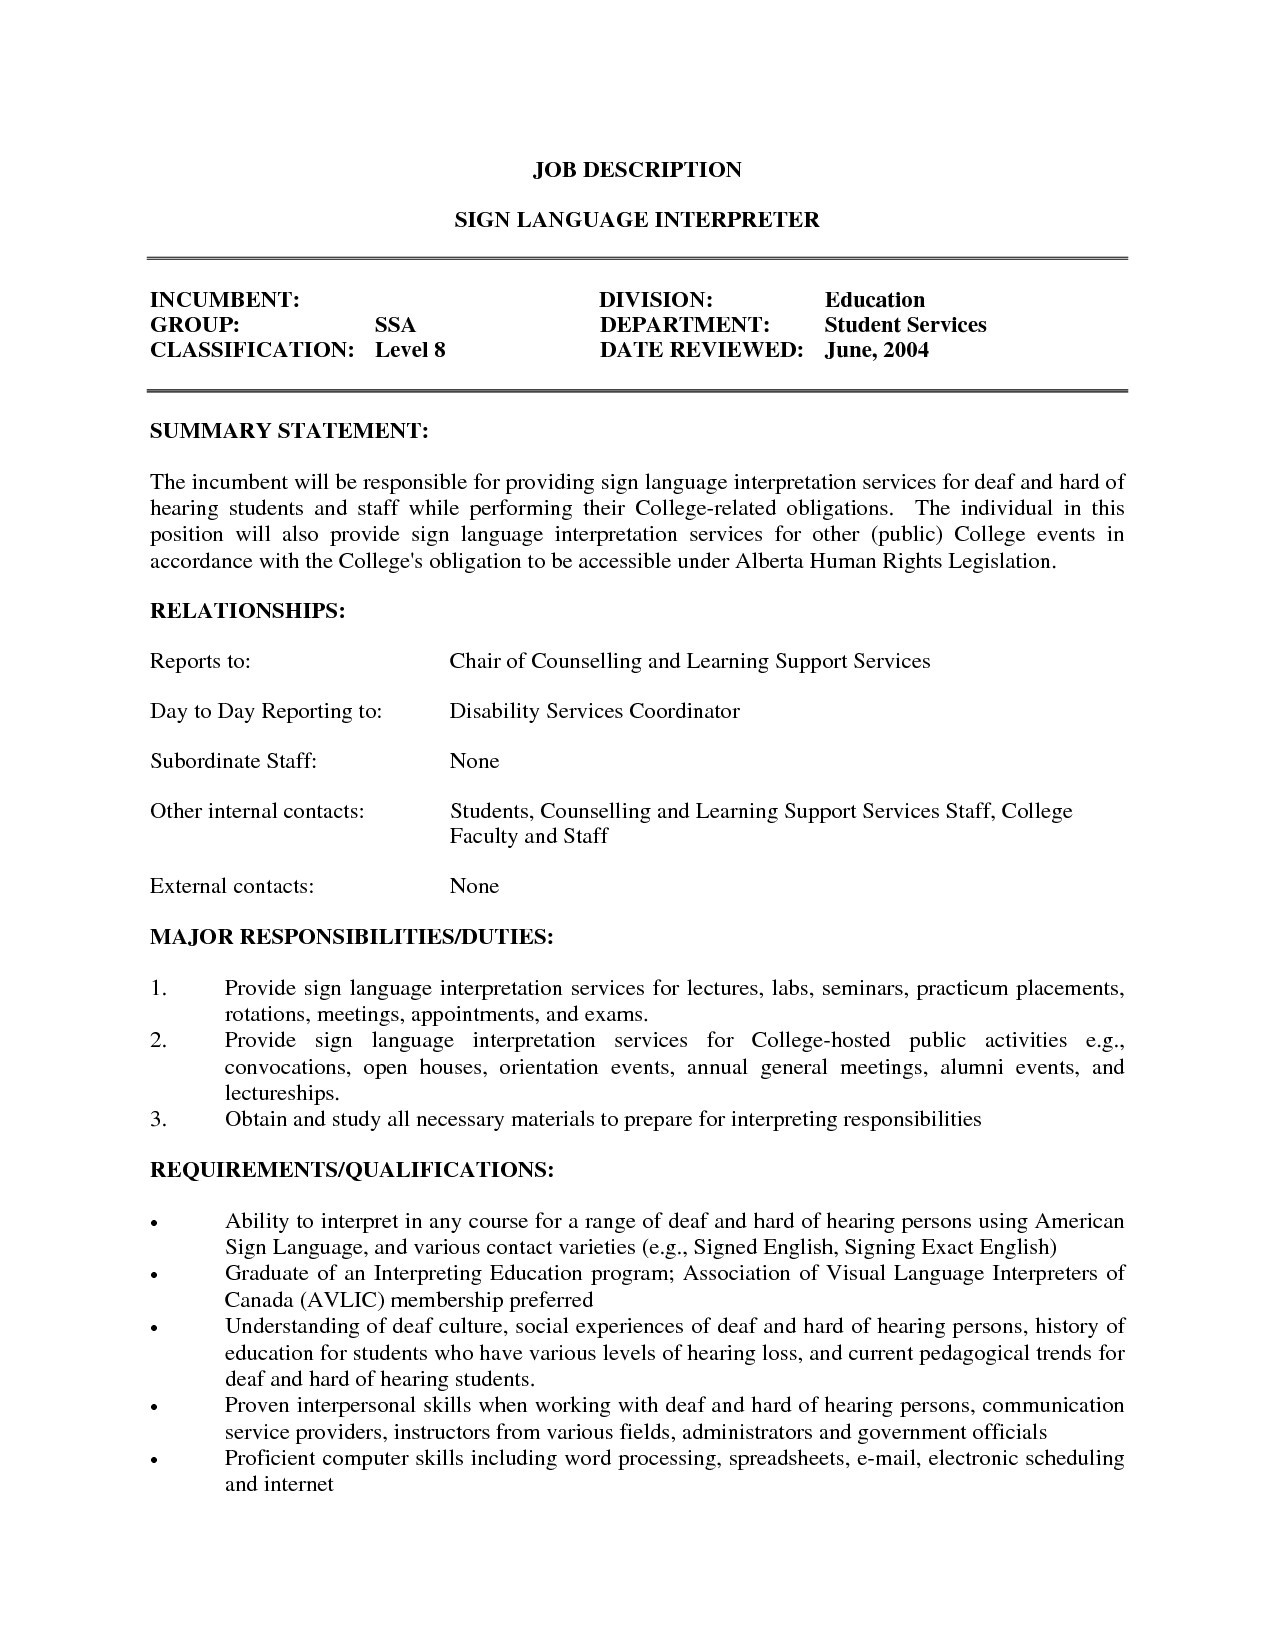 Chiropractic assistant Resume - Chiropractor Duties New Medical Interpreter Resume Best Chiropractic